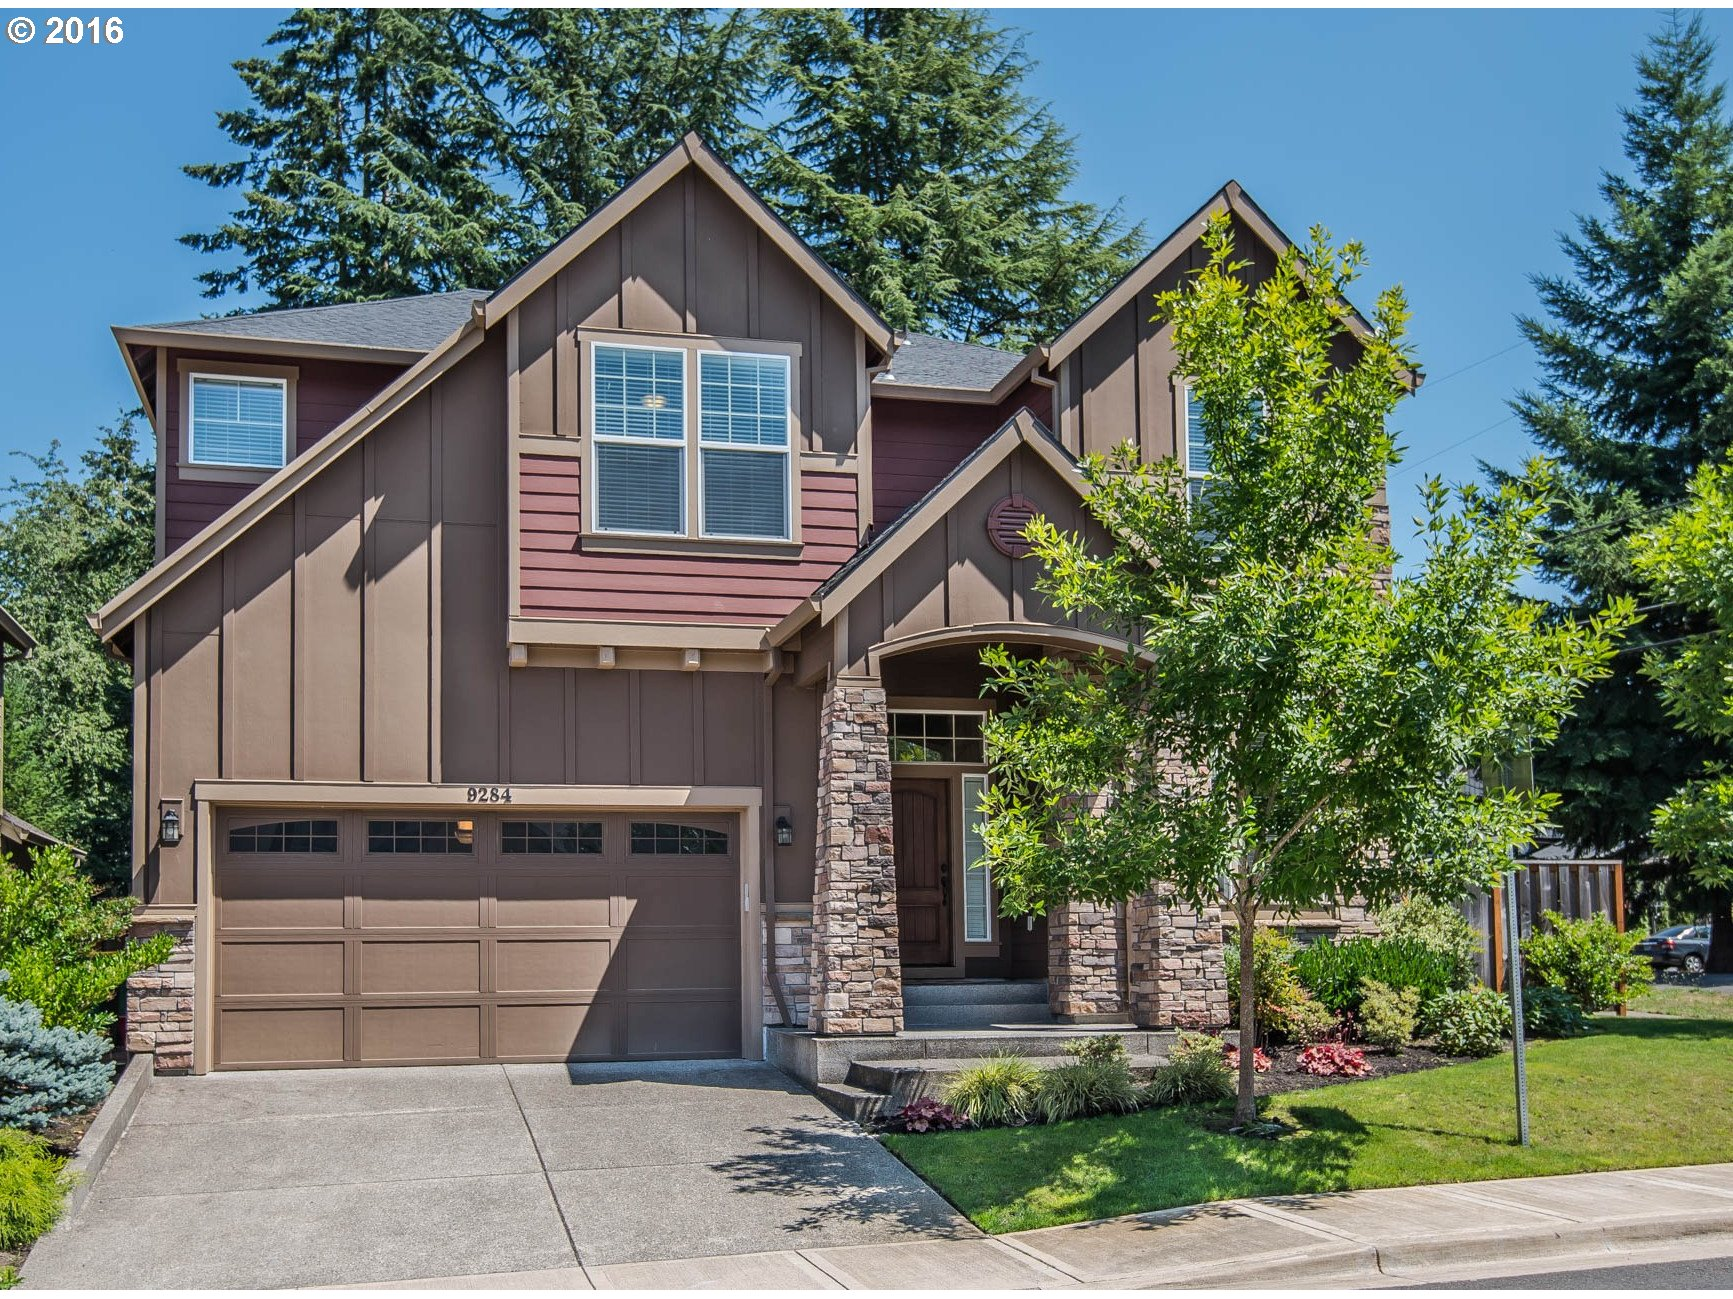 9284 SW 75TH AVE, Portland OR 97223